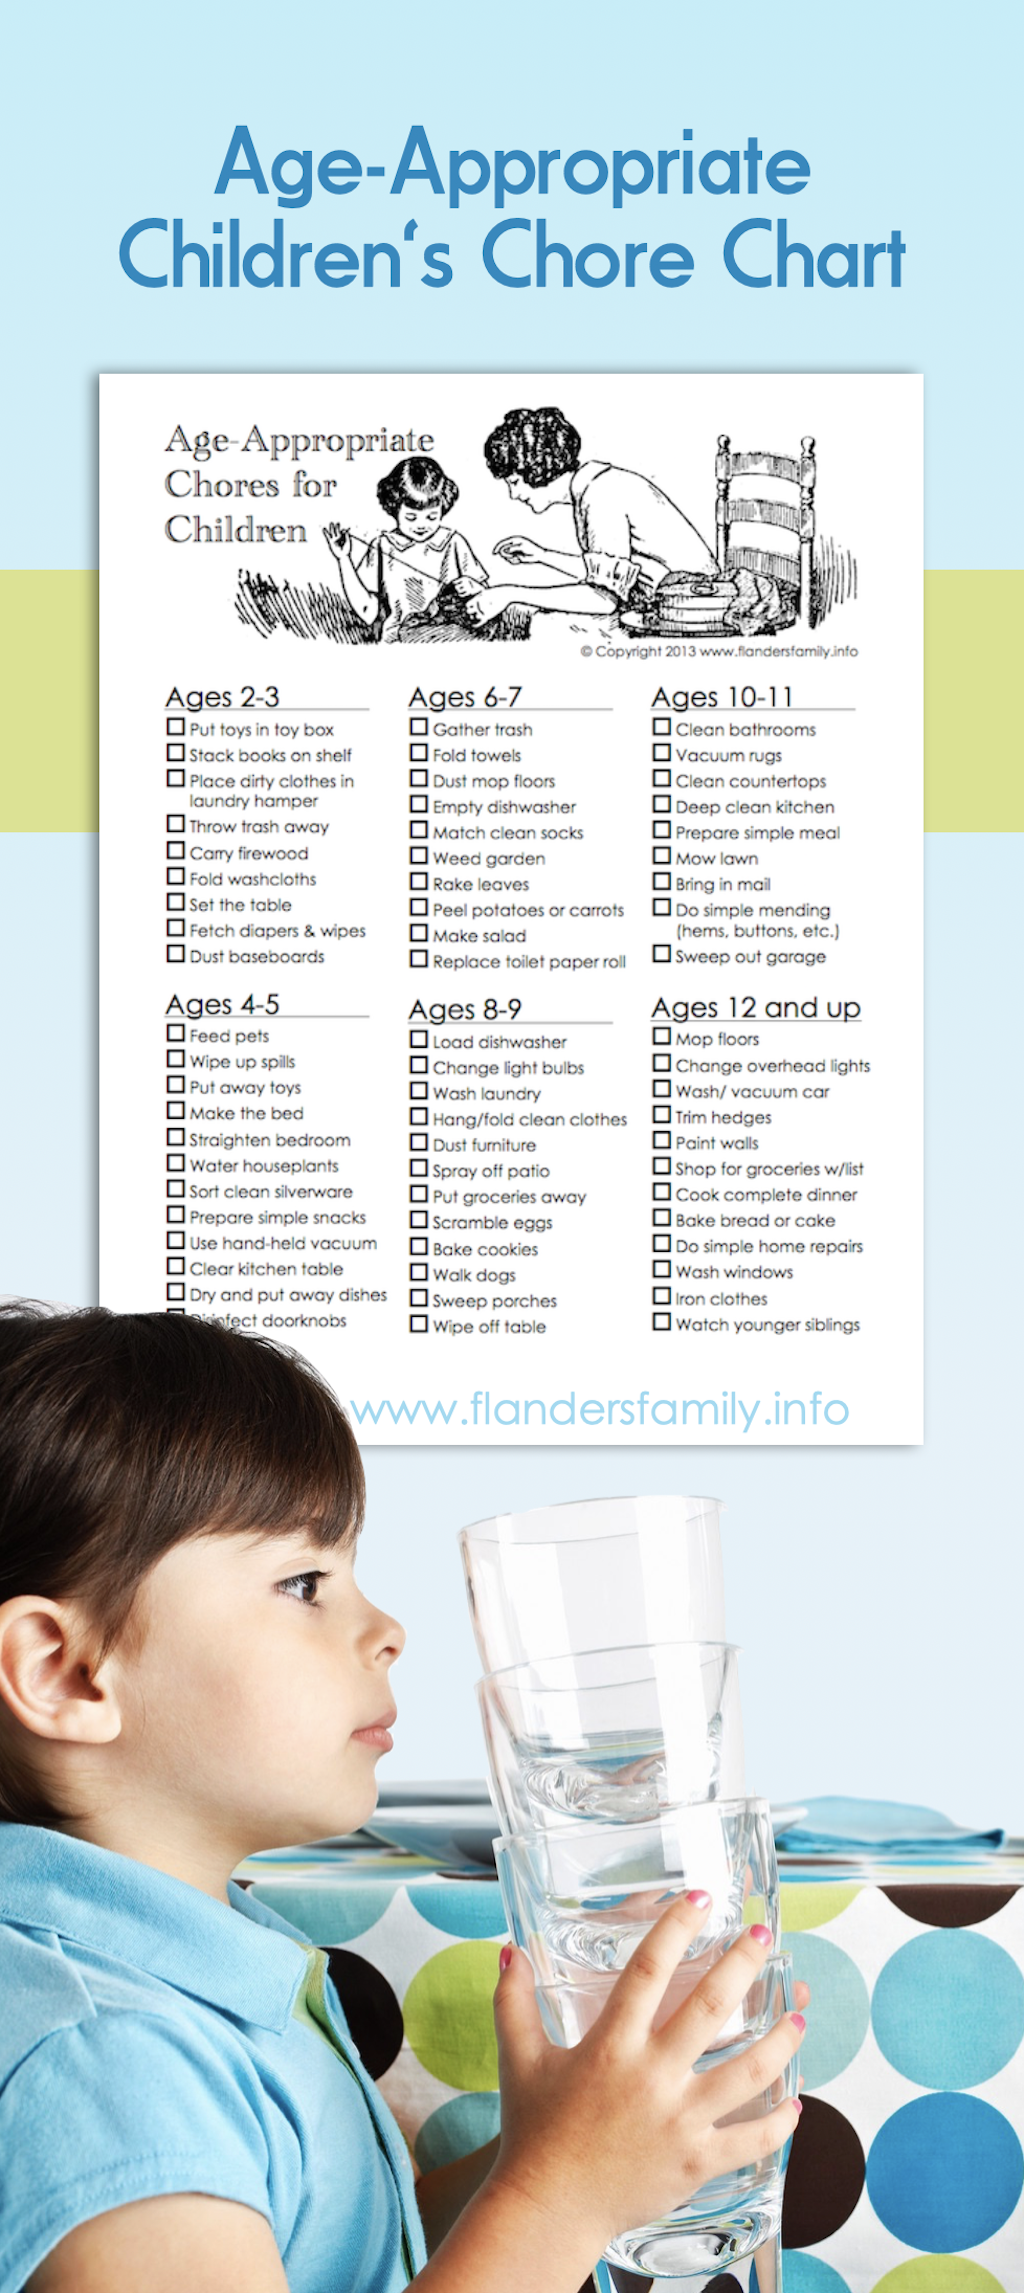 Age-Appropriate Children's Chore Chart